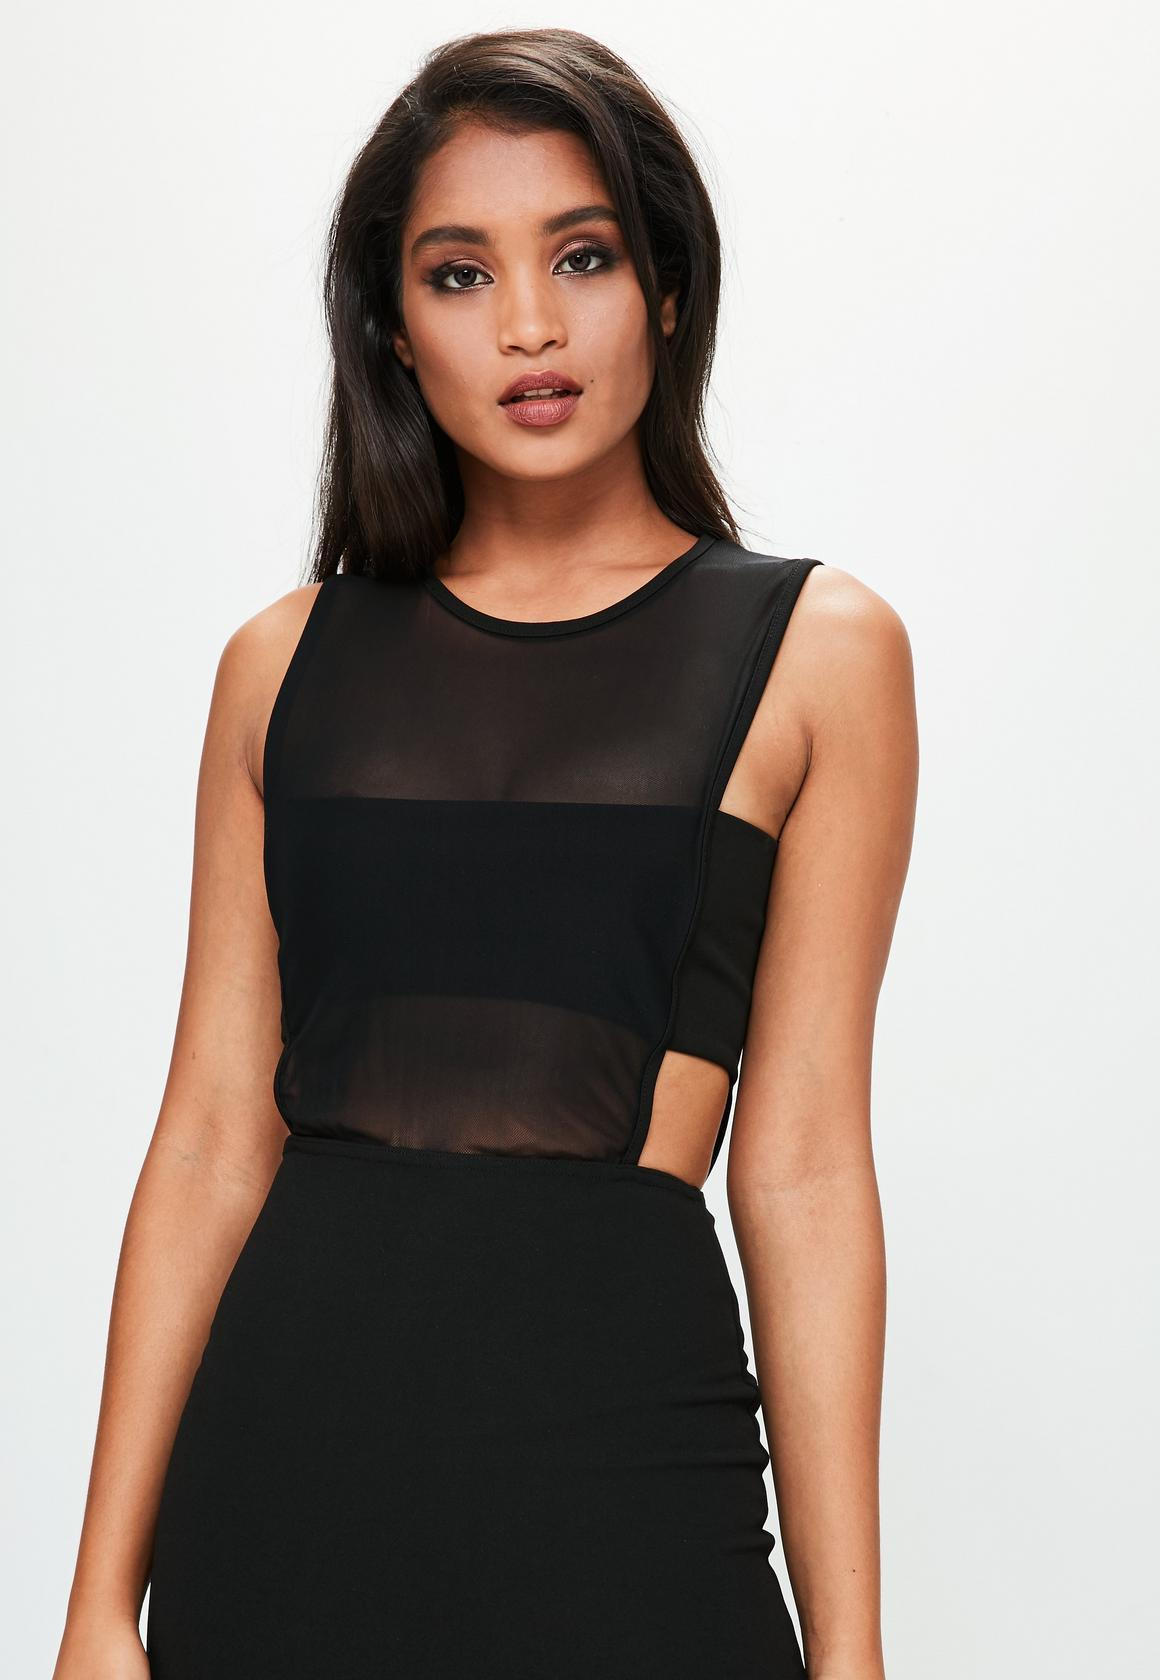 【海外限定】Missguidedマキシドレス☆Black Mesh Top Cut Out F